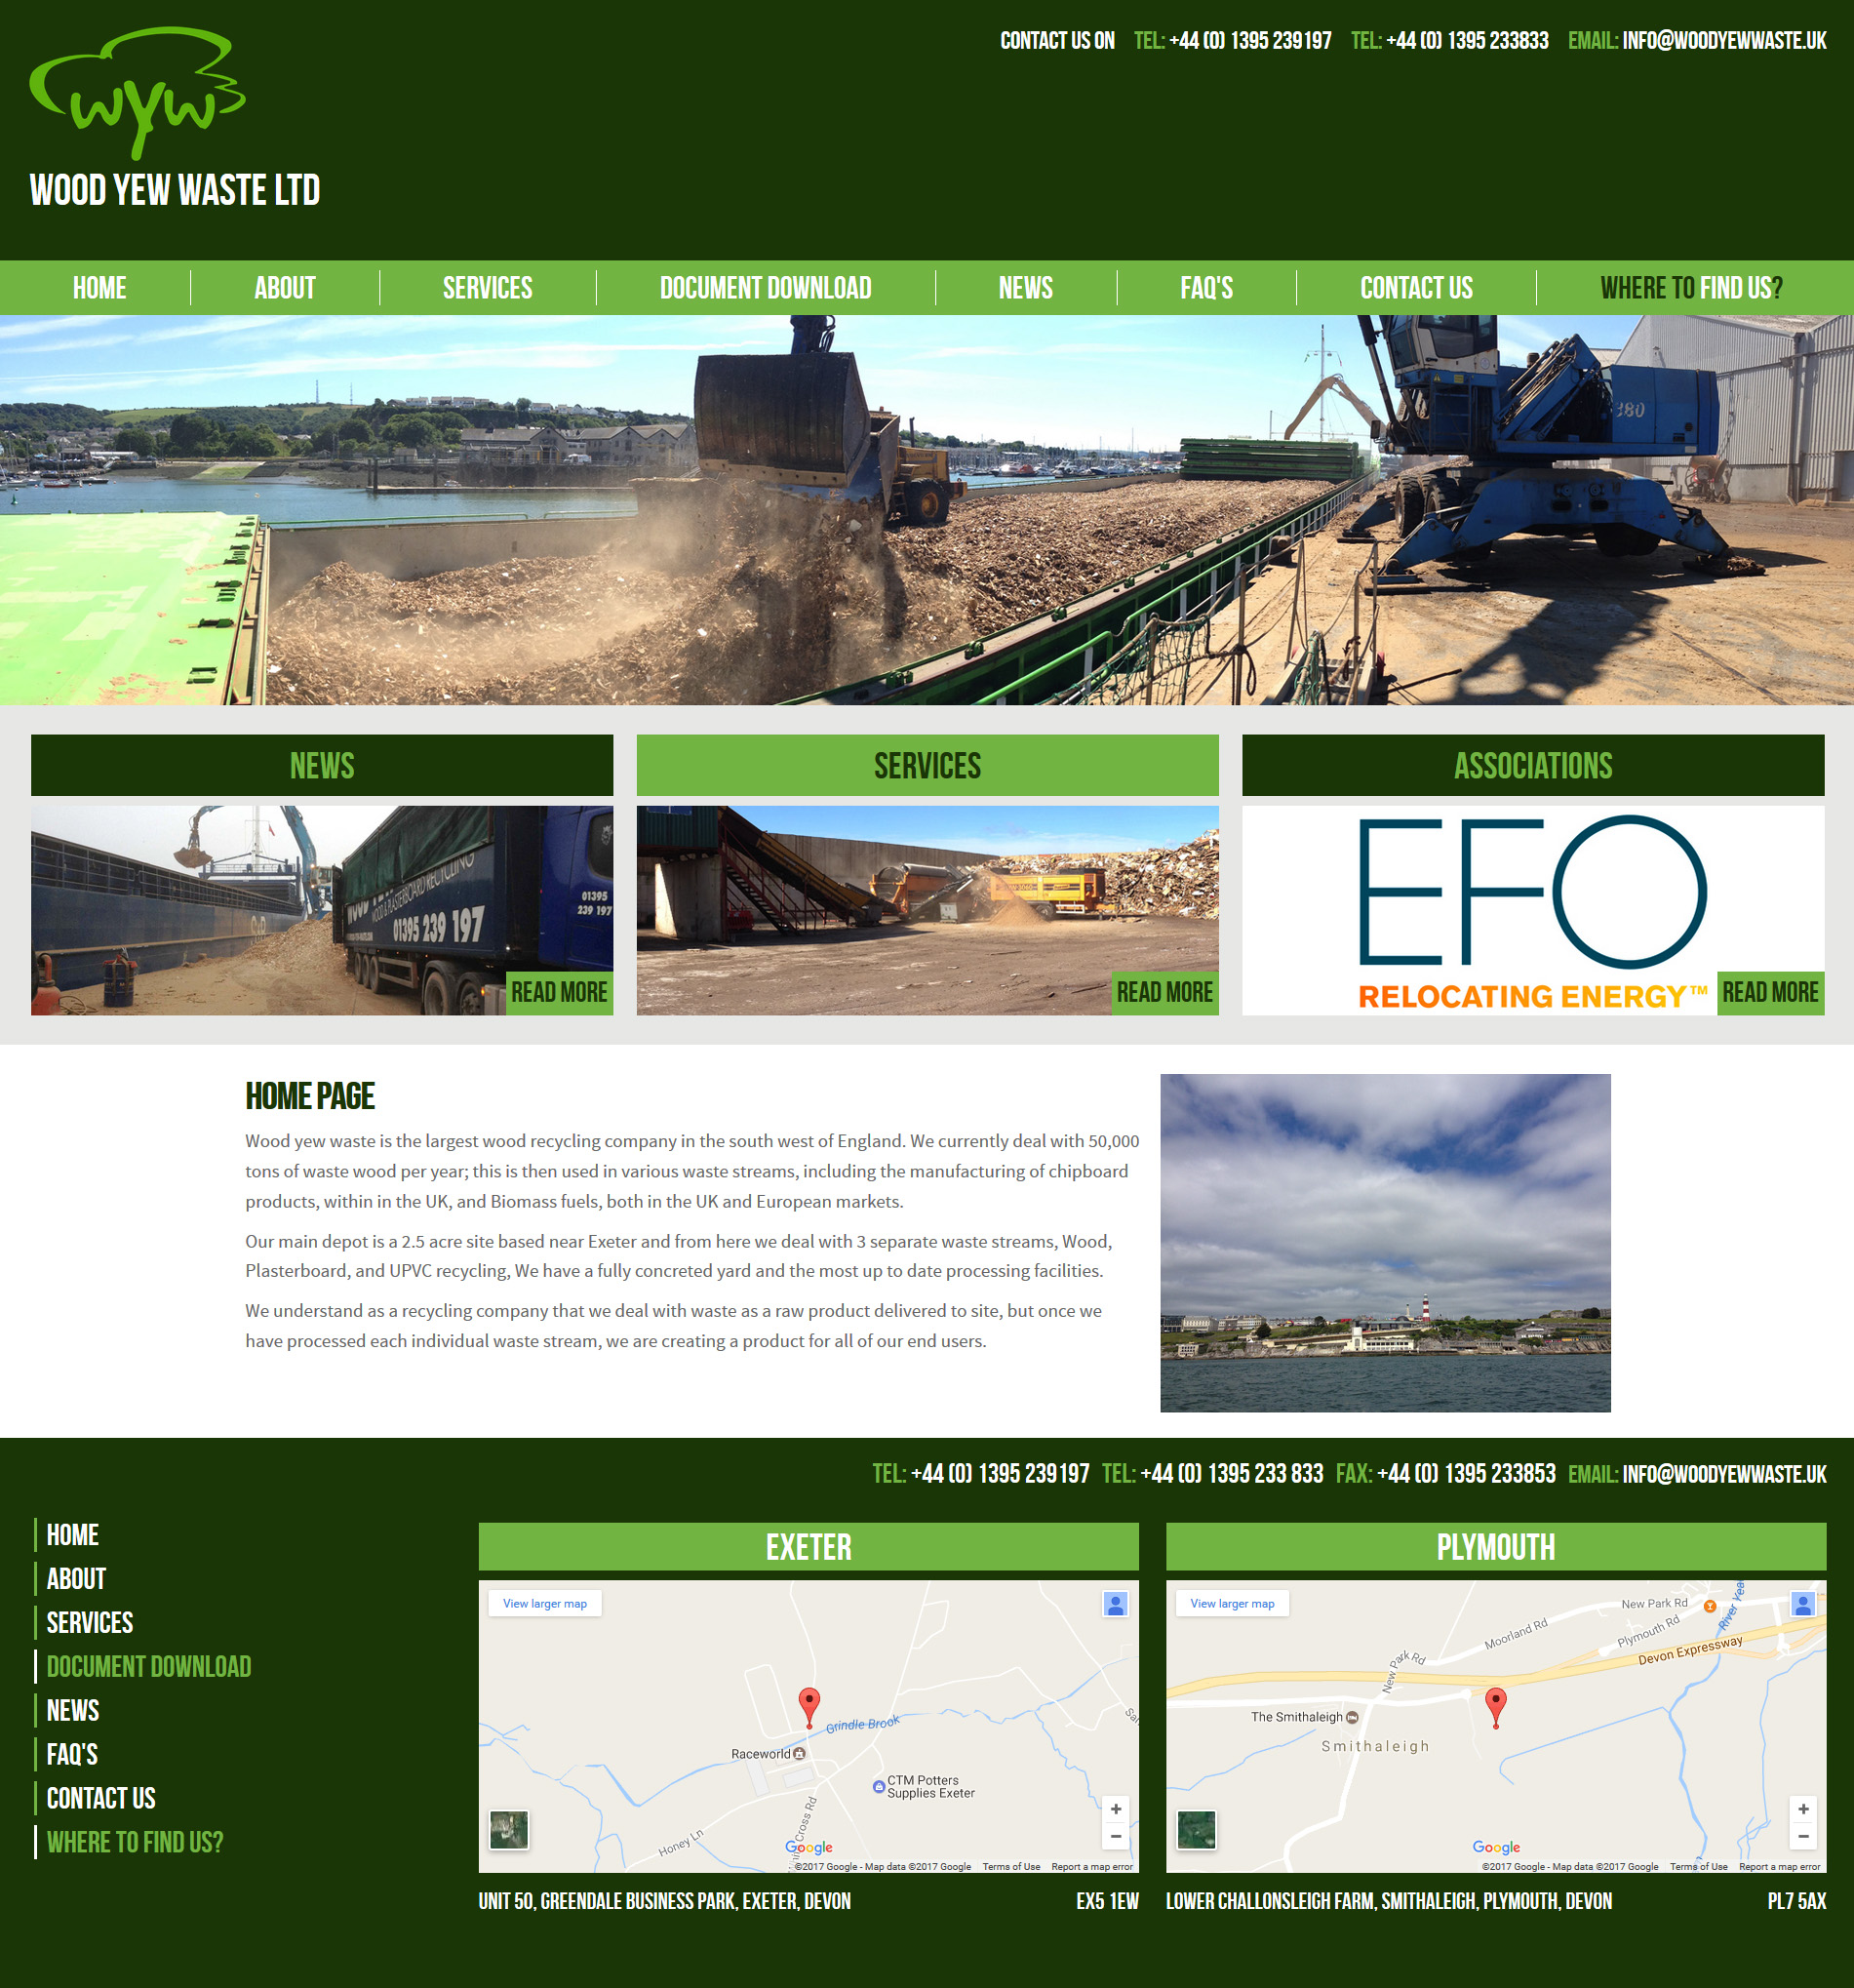 Wood Yew Waste Website Design